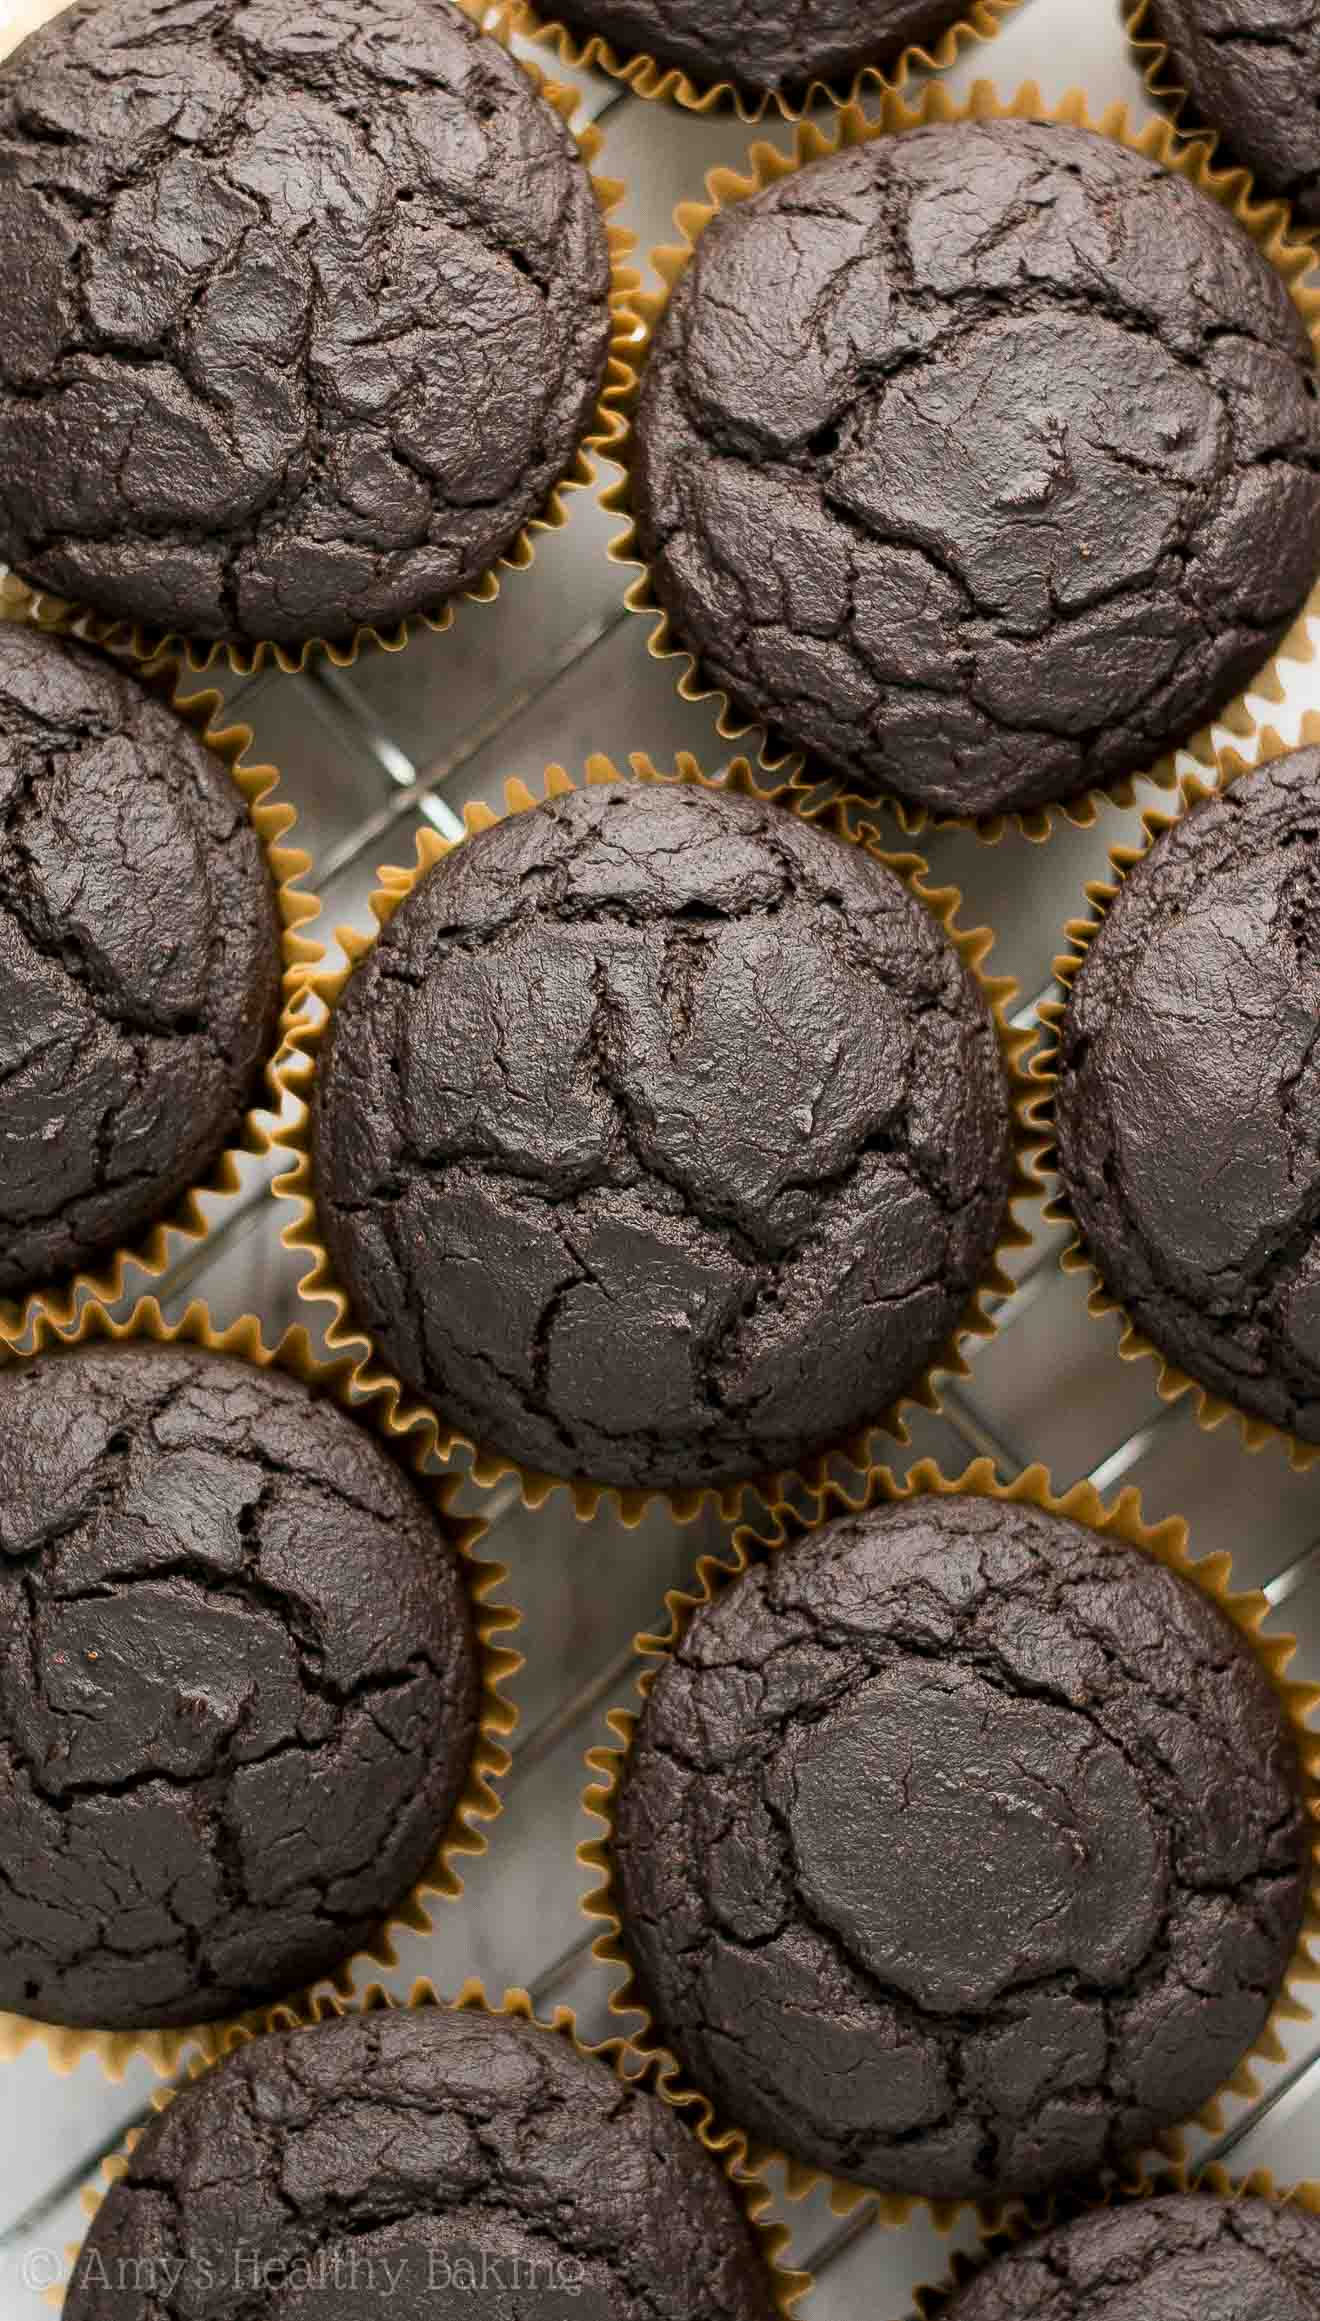 Freshly Baked Homemade Sugar-Free Mint Chocolate Cupcakes